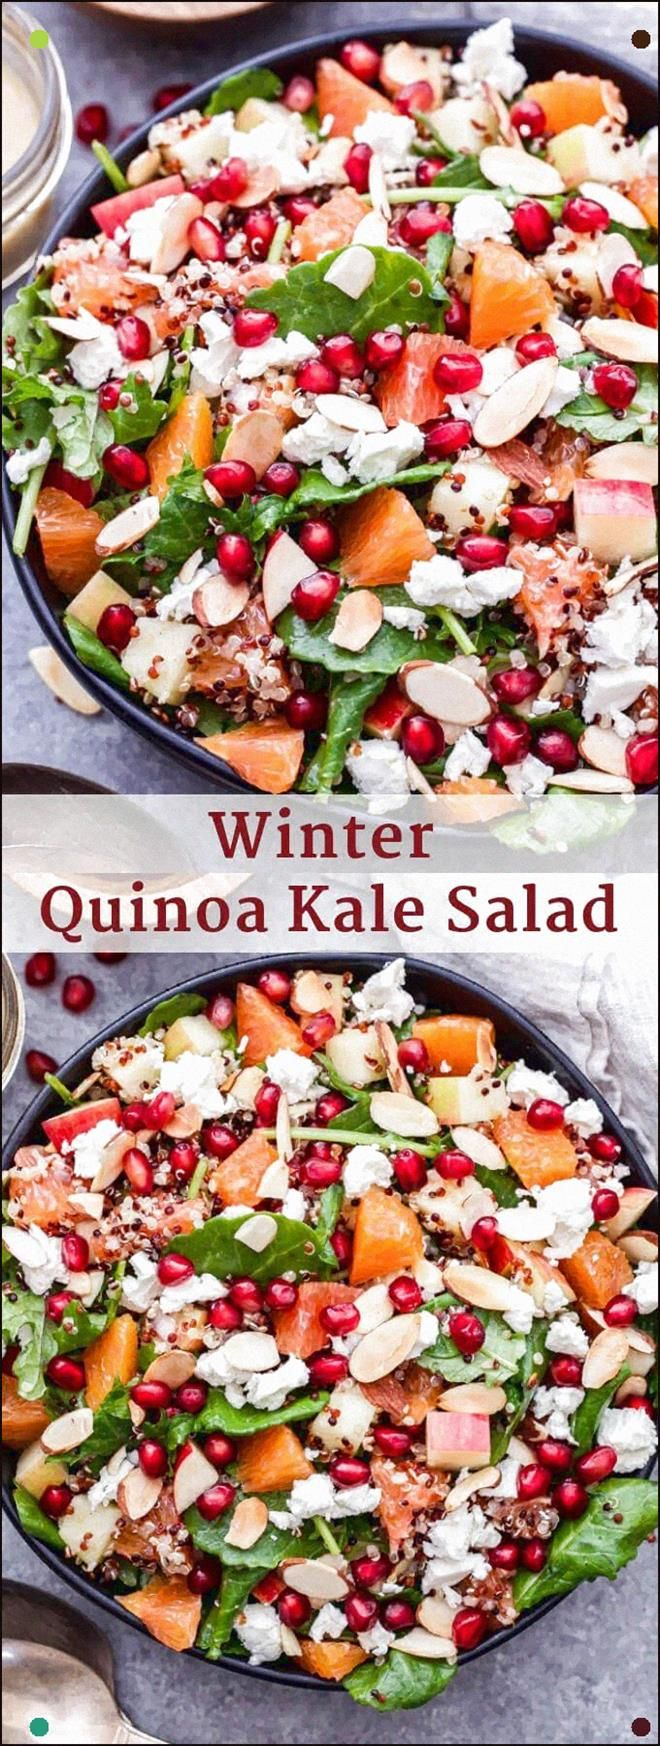 This Winter Quinoa Kale Salad Is Full Of Winter Produce, Hearty Quinoa And Peppery Baby Kale It's A